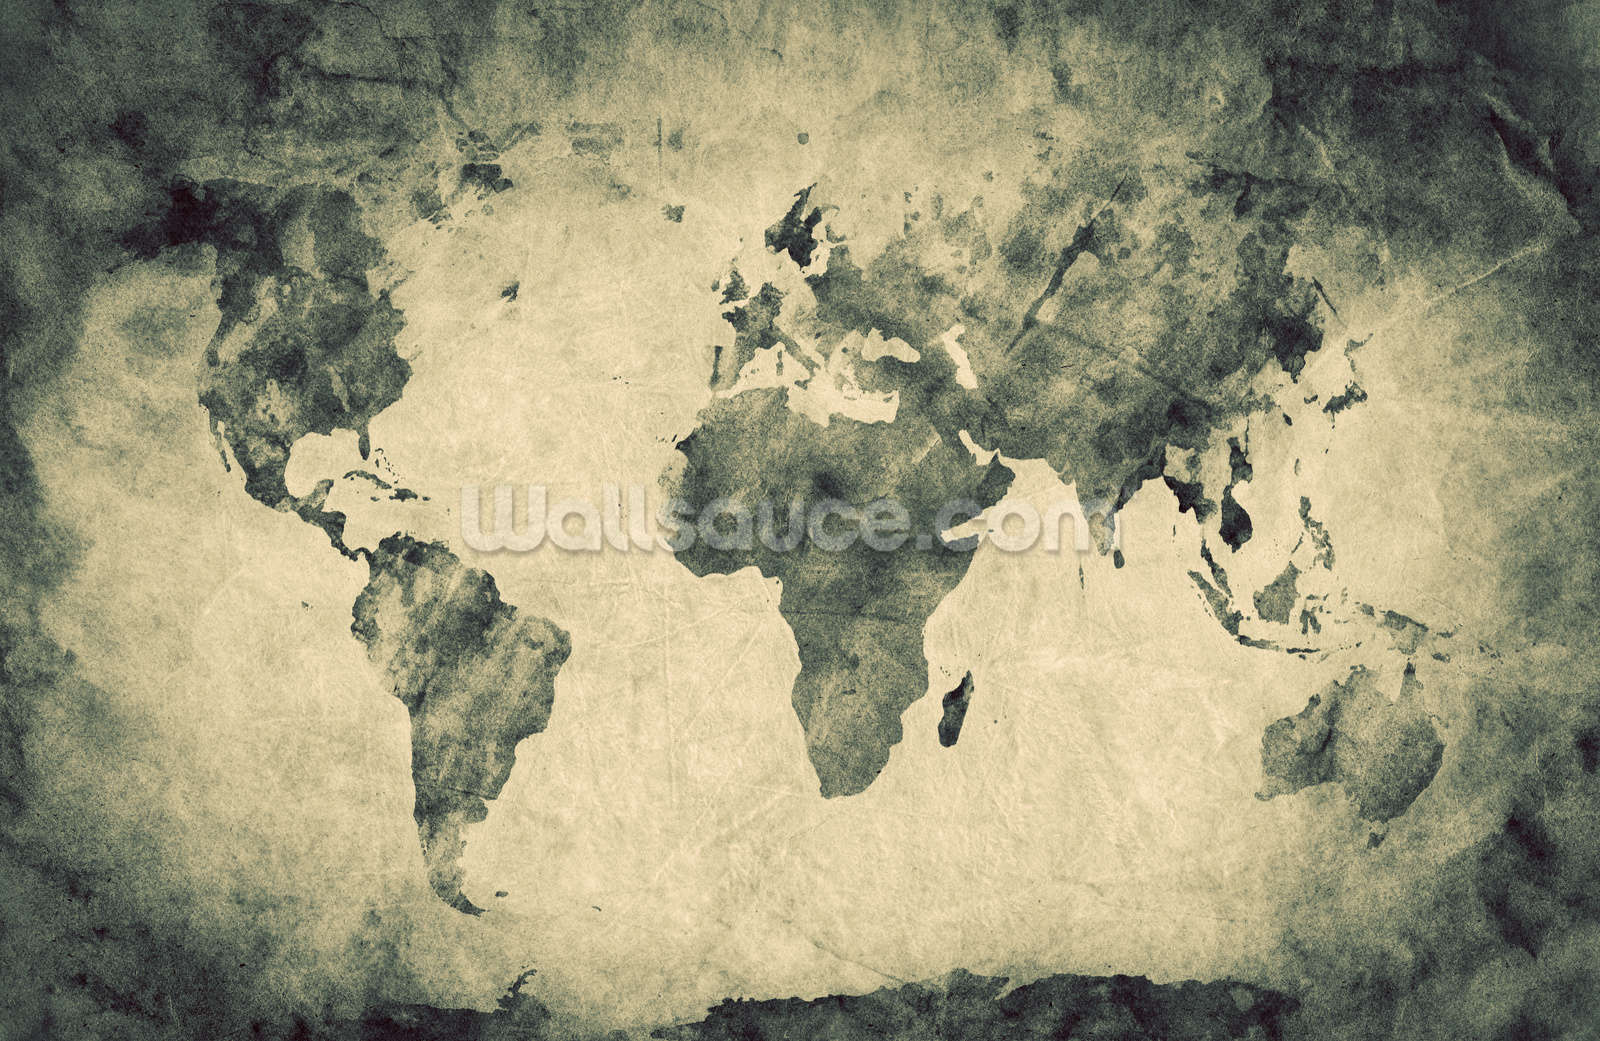 World map wallpaper mural black and white wall murals youll love ancient world map sketch wallpaper wall mural wallsauce new zealand next gumiabroncs Images